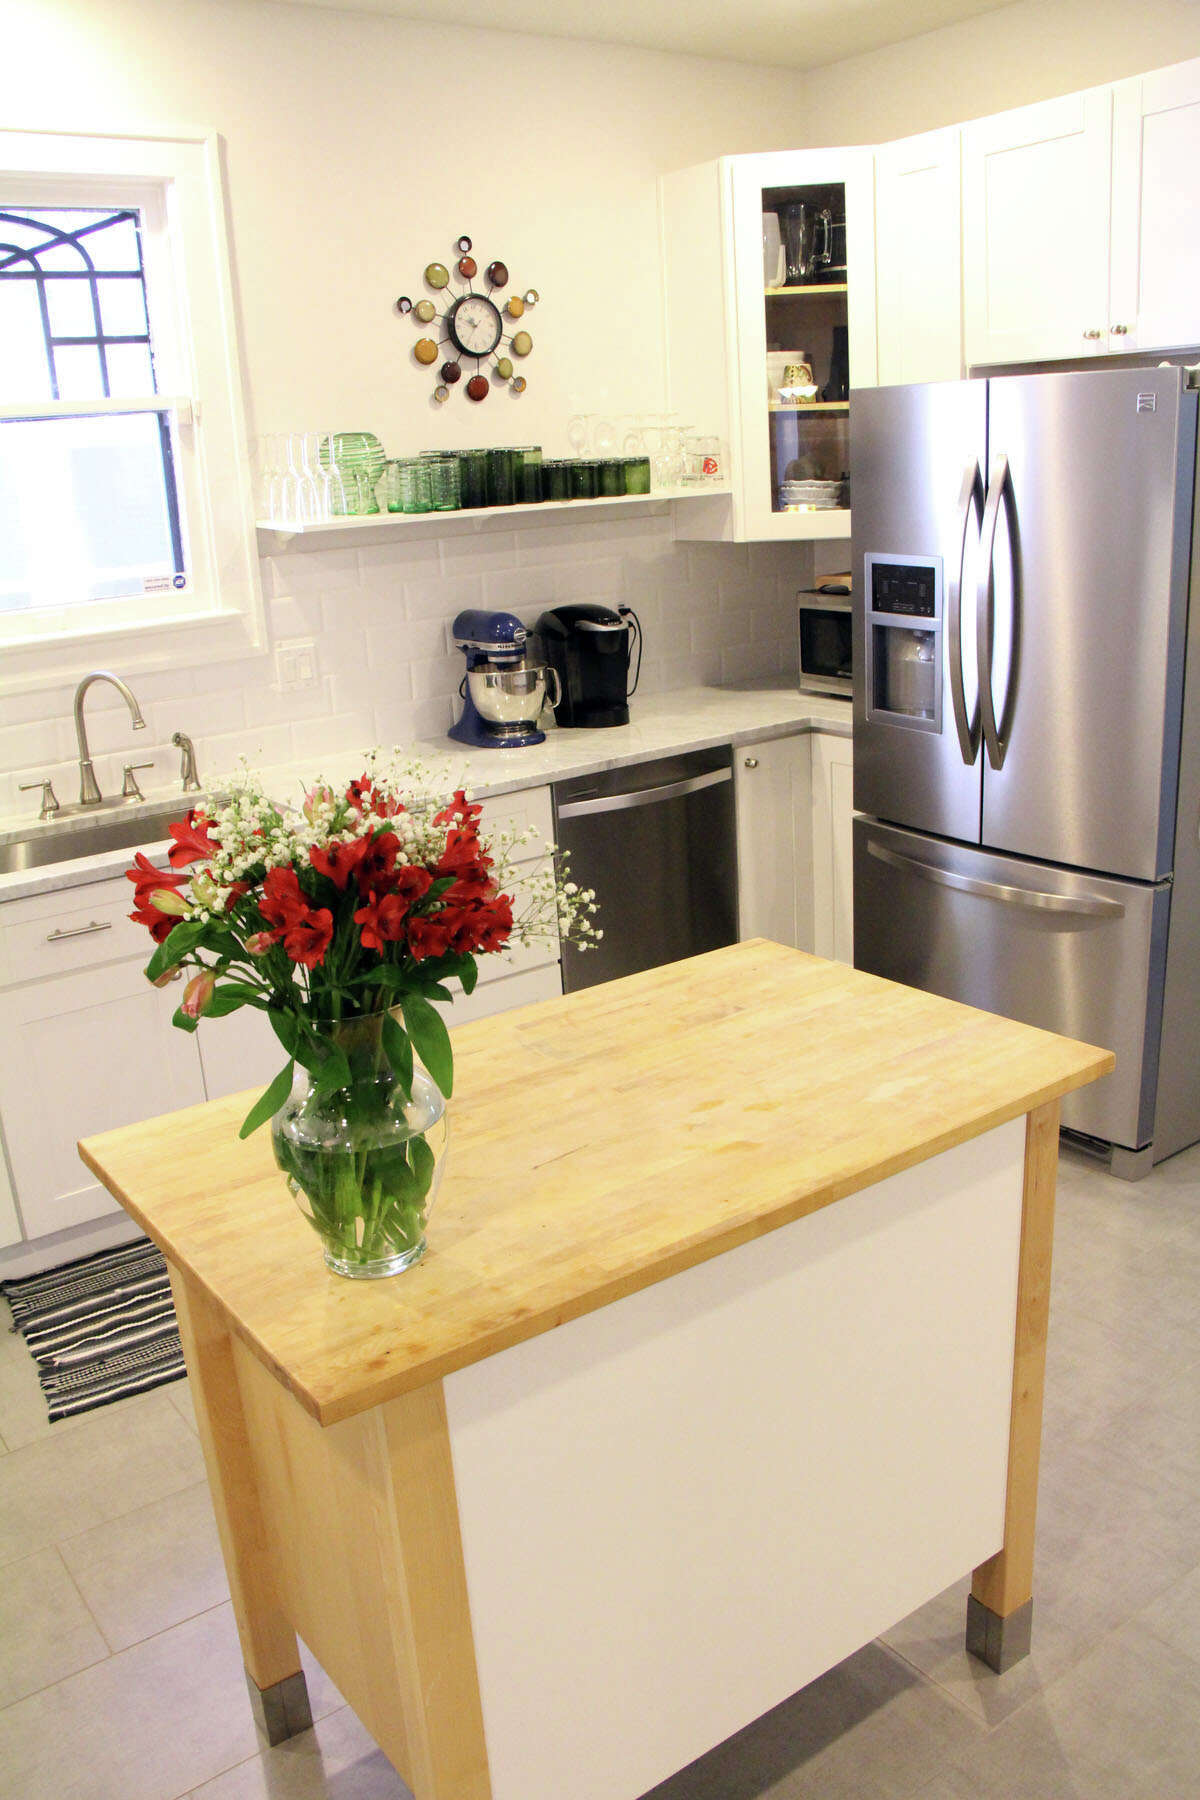 A modern, open kitchen drew Marli and Kolby Klaus to the updated 1922 house in the Lavaca Historic District.